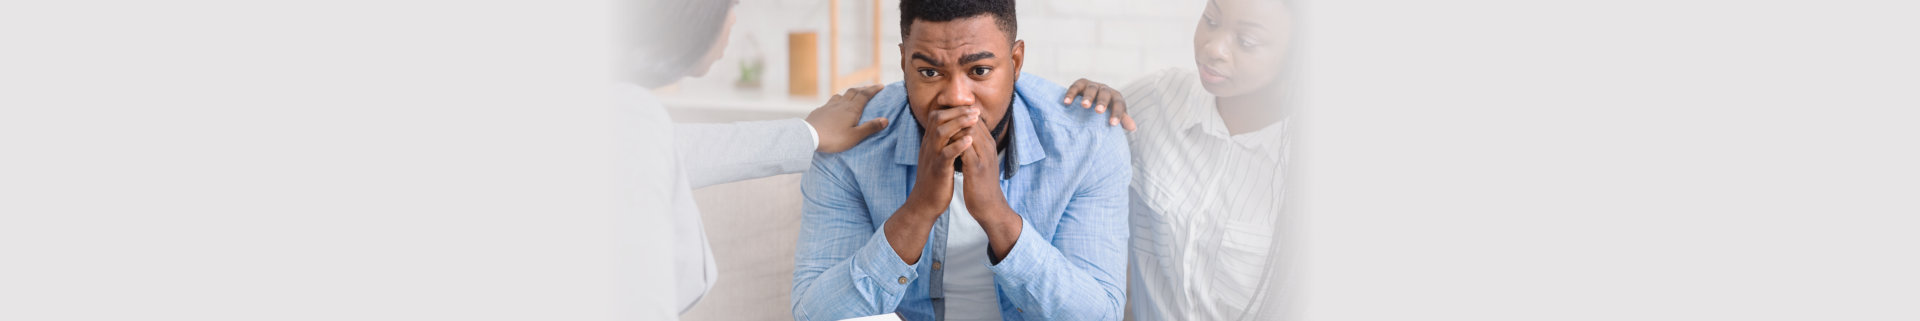 Caring black wife and counselor supporting man during psychotherapy session.